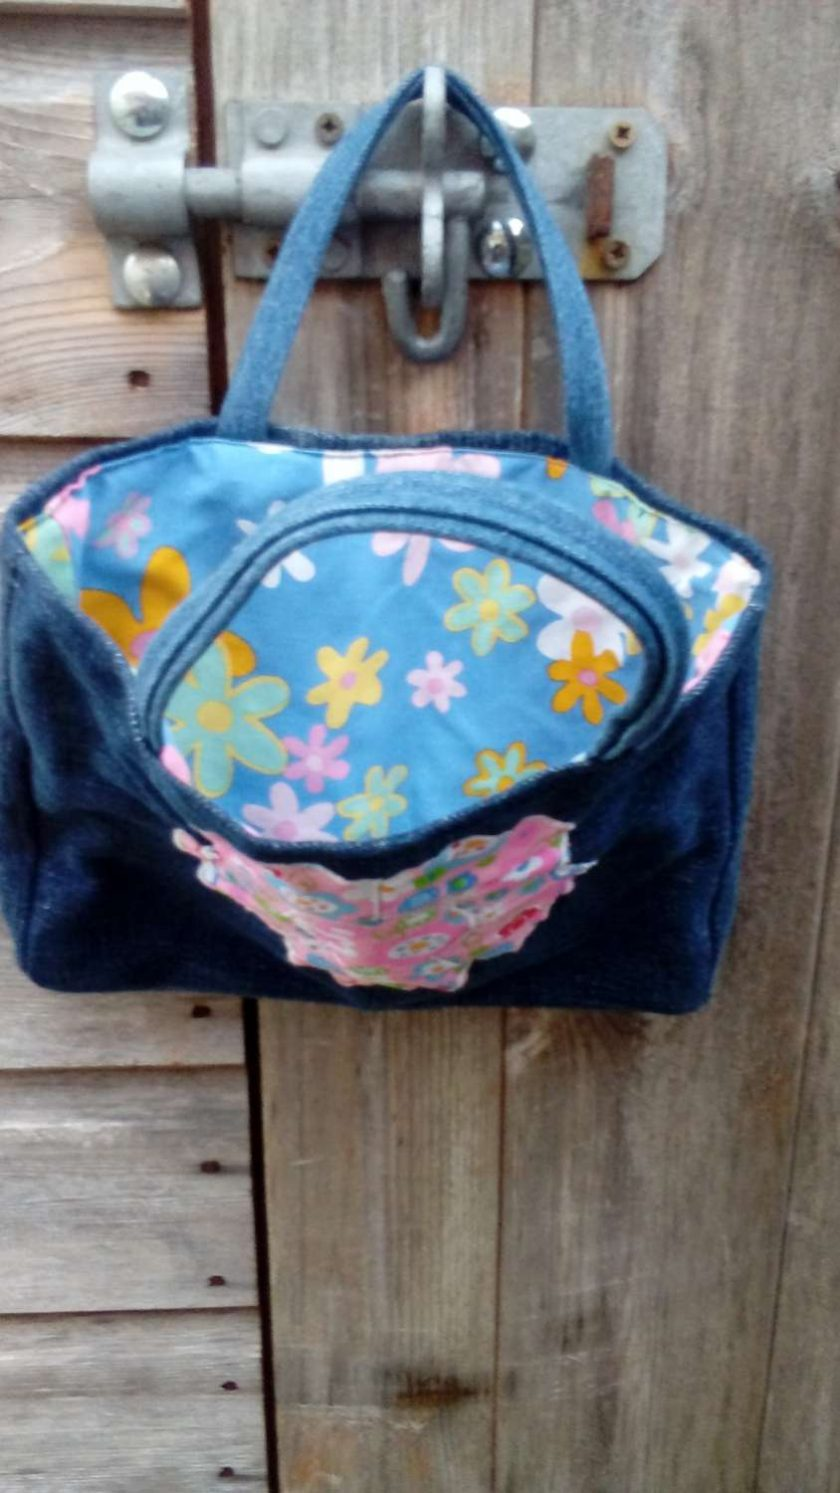 Kids Handbag (from recycled jeans) Applique Flower Fully Lined Bag Gift Tote FREE UK POSTAGE 3